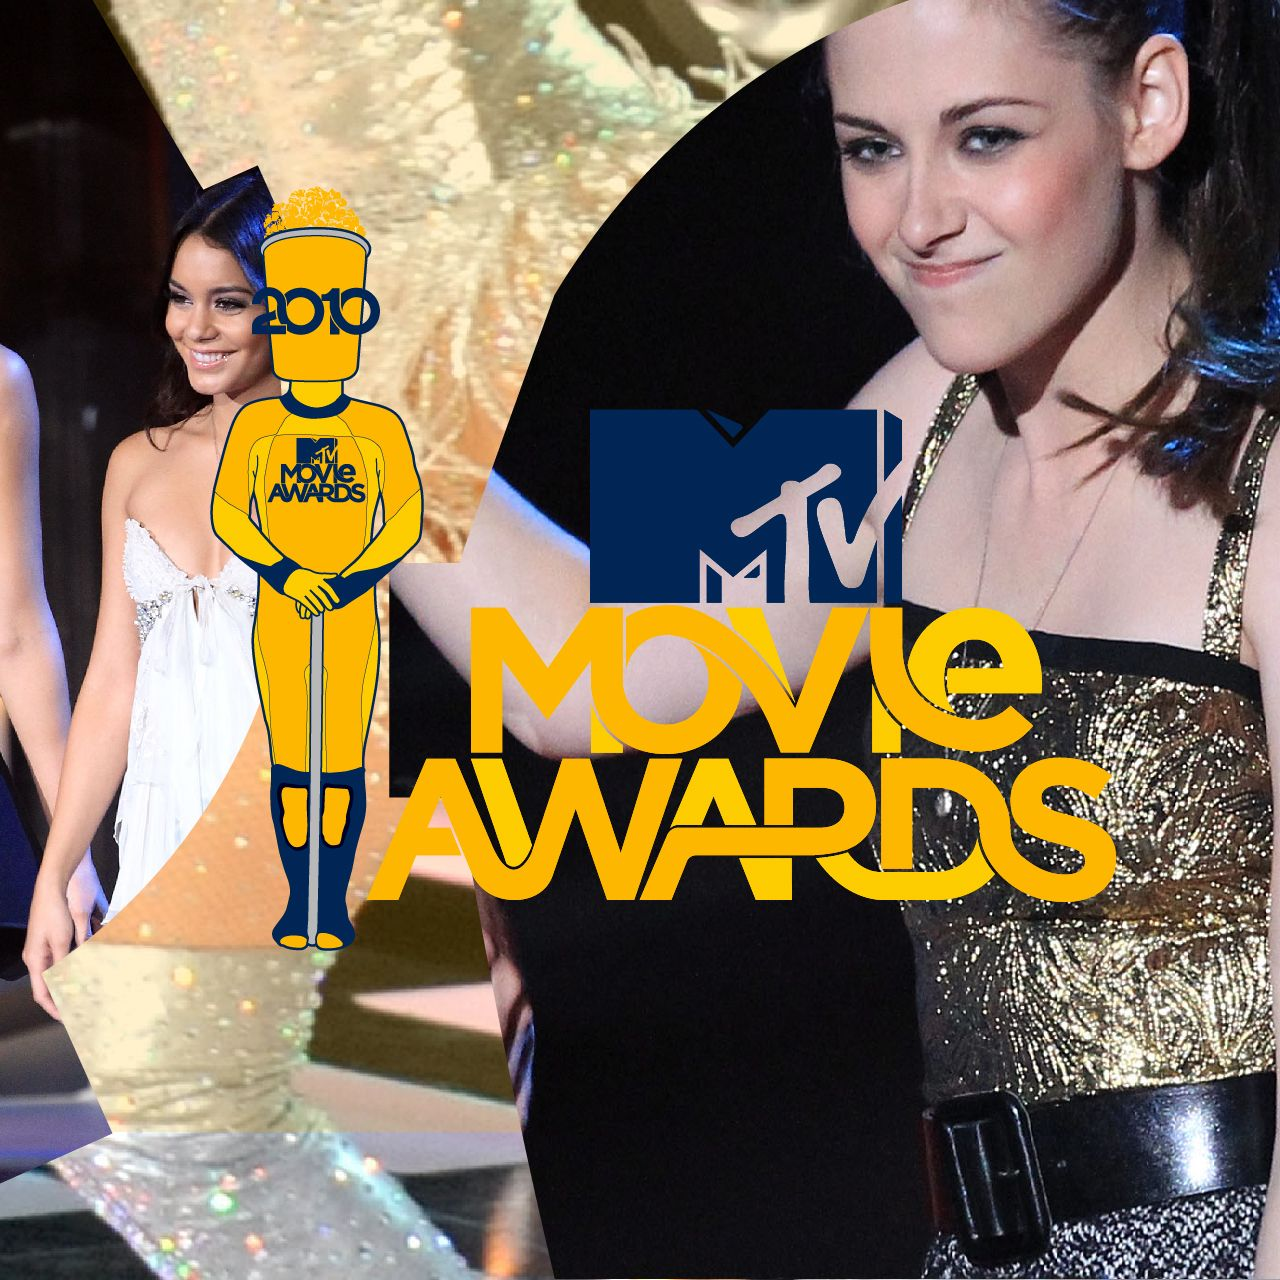 Movie Awards 2010 - MTV Movie Awards - MTV